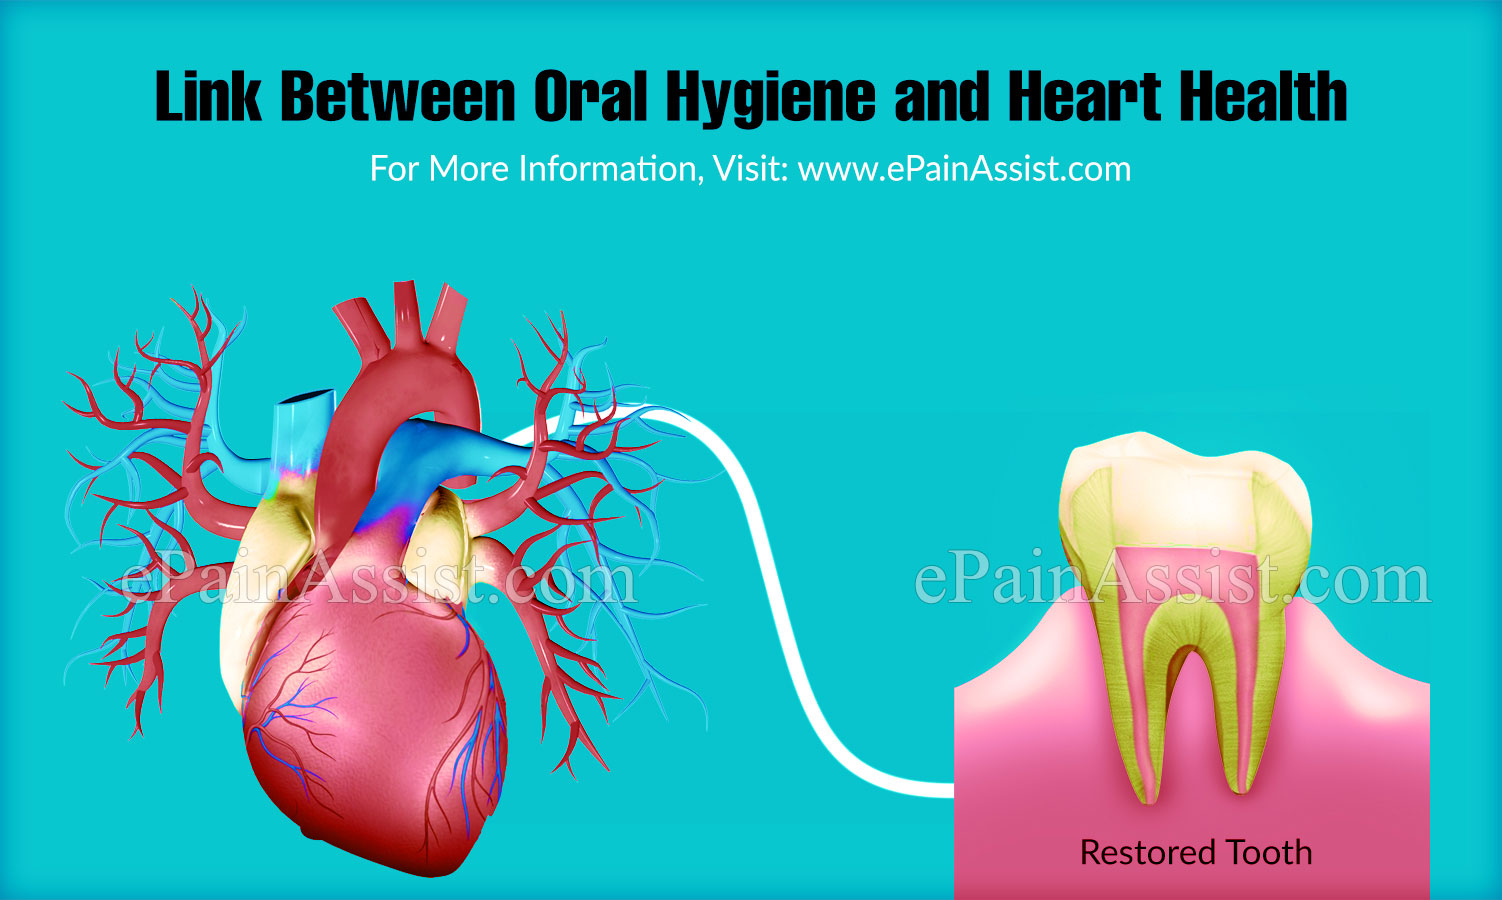 Link Between Oral Hygiene and Heart Health